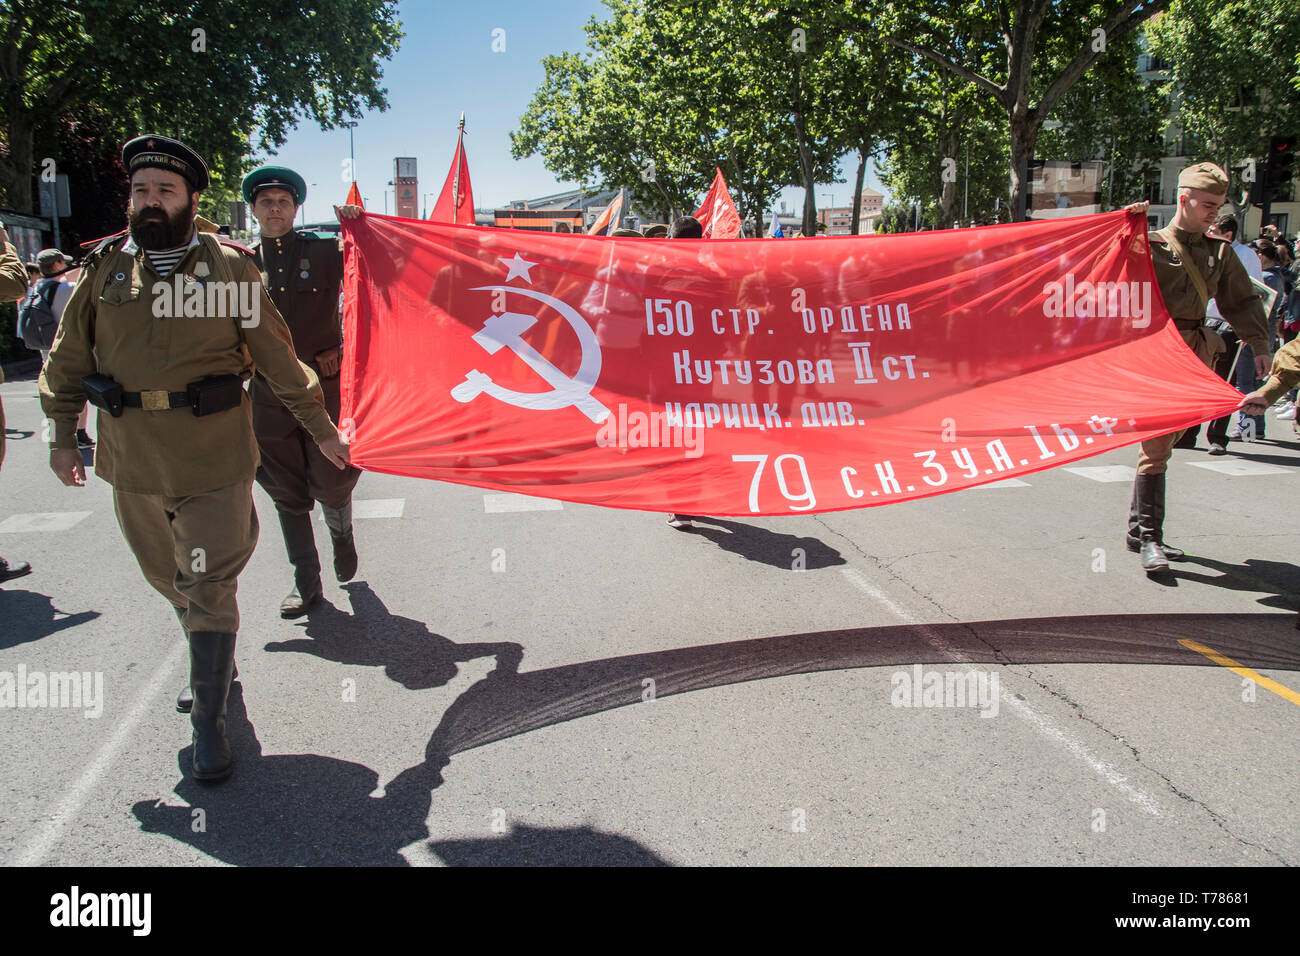 celebration of the Soviet Union in its victory in the Second World War by the Russian Hispano community in Madrid, Spain - Stock Image